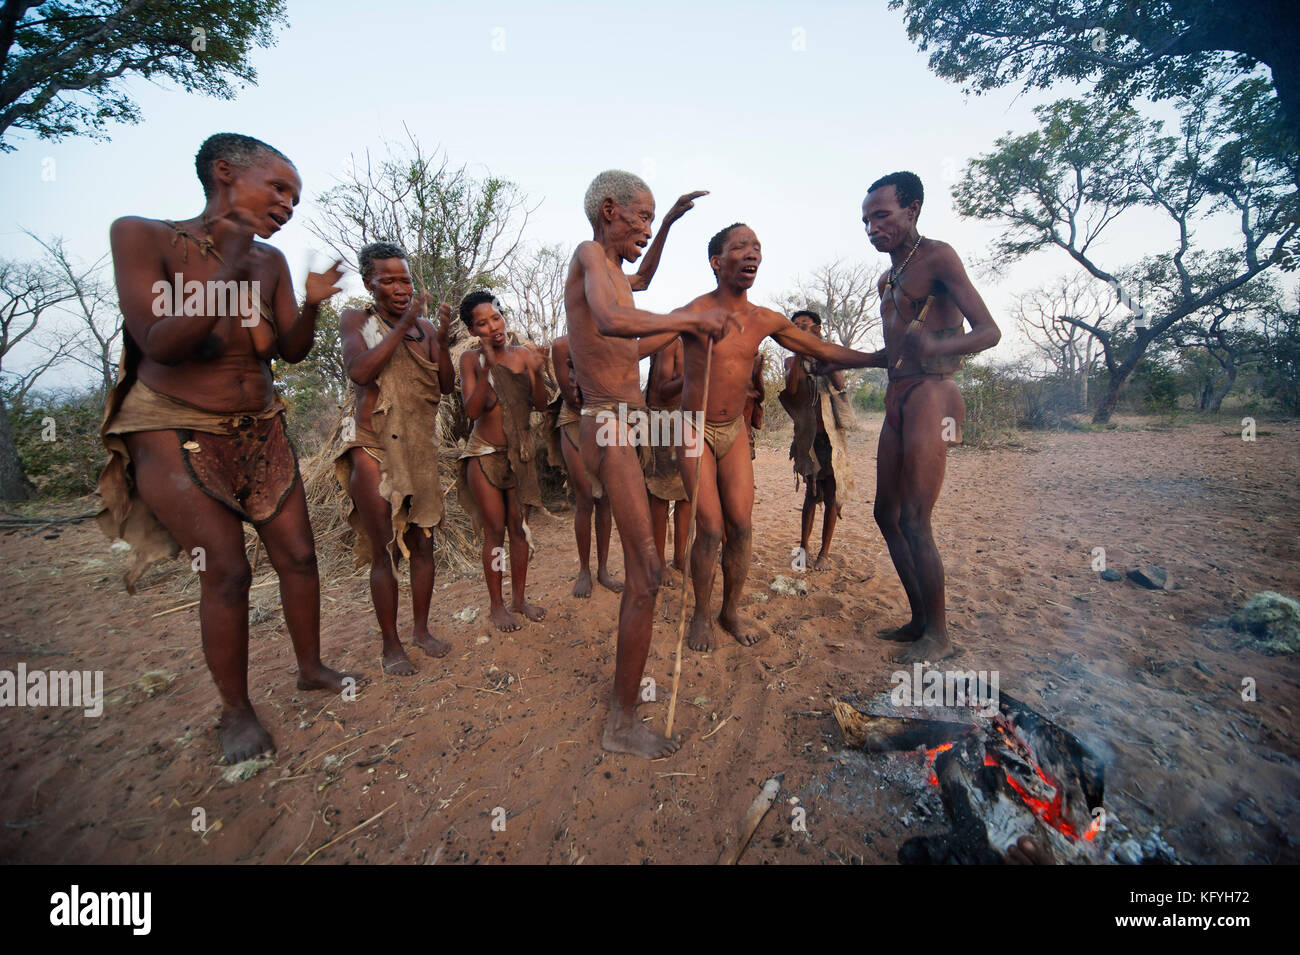 Bushman people performing a dance ceremony at Grashoek, Namibia - Stock Image